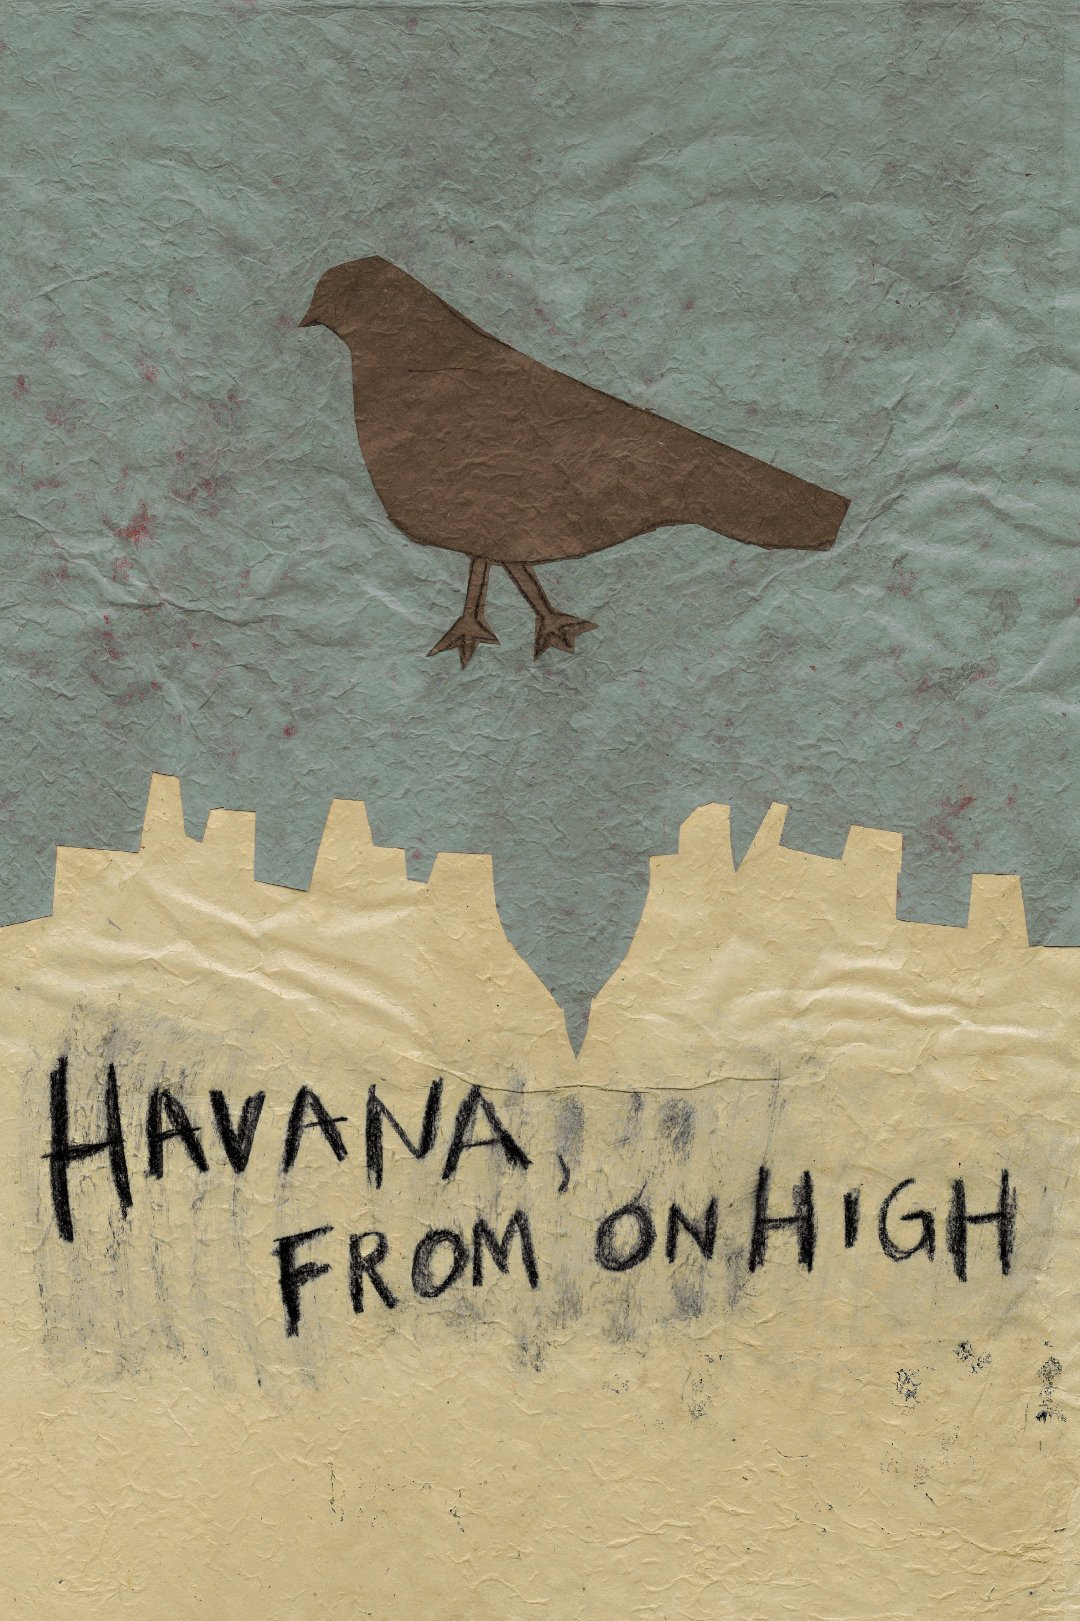 Havana from on High - Poster